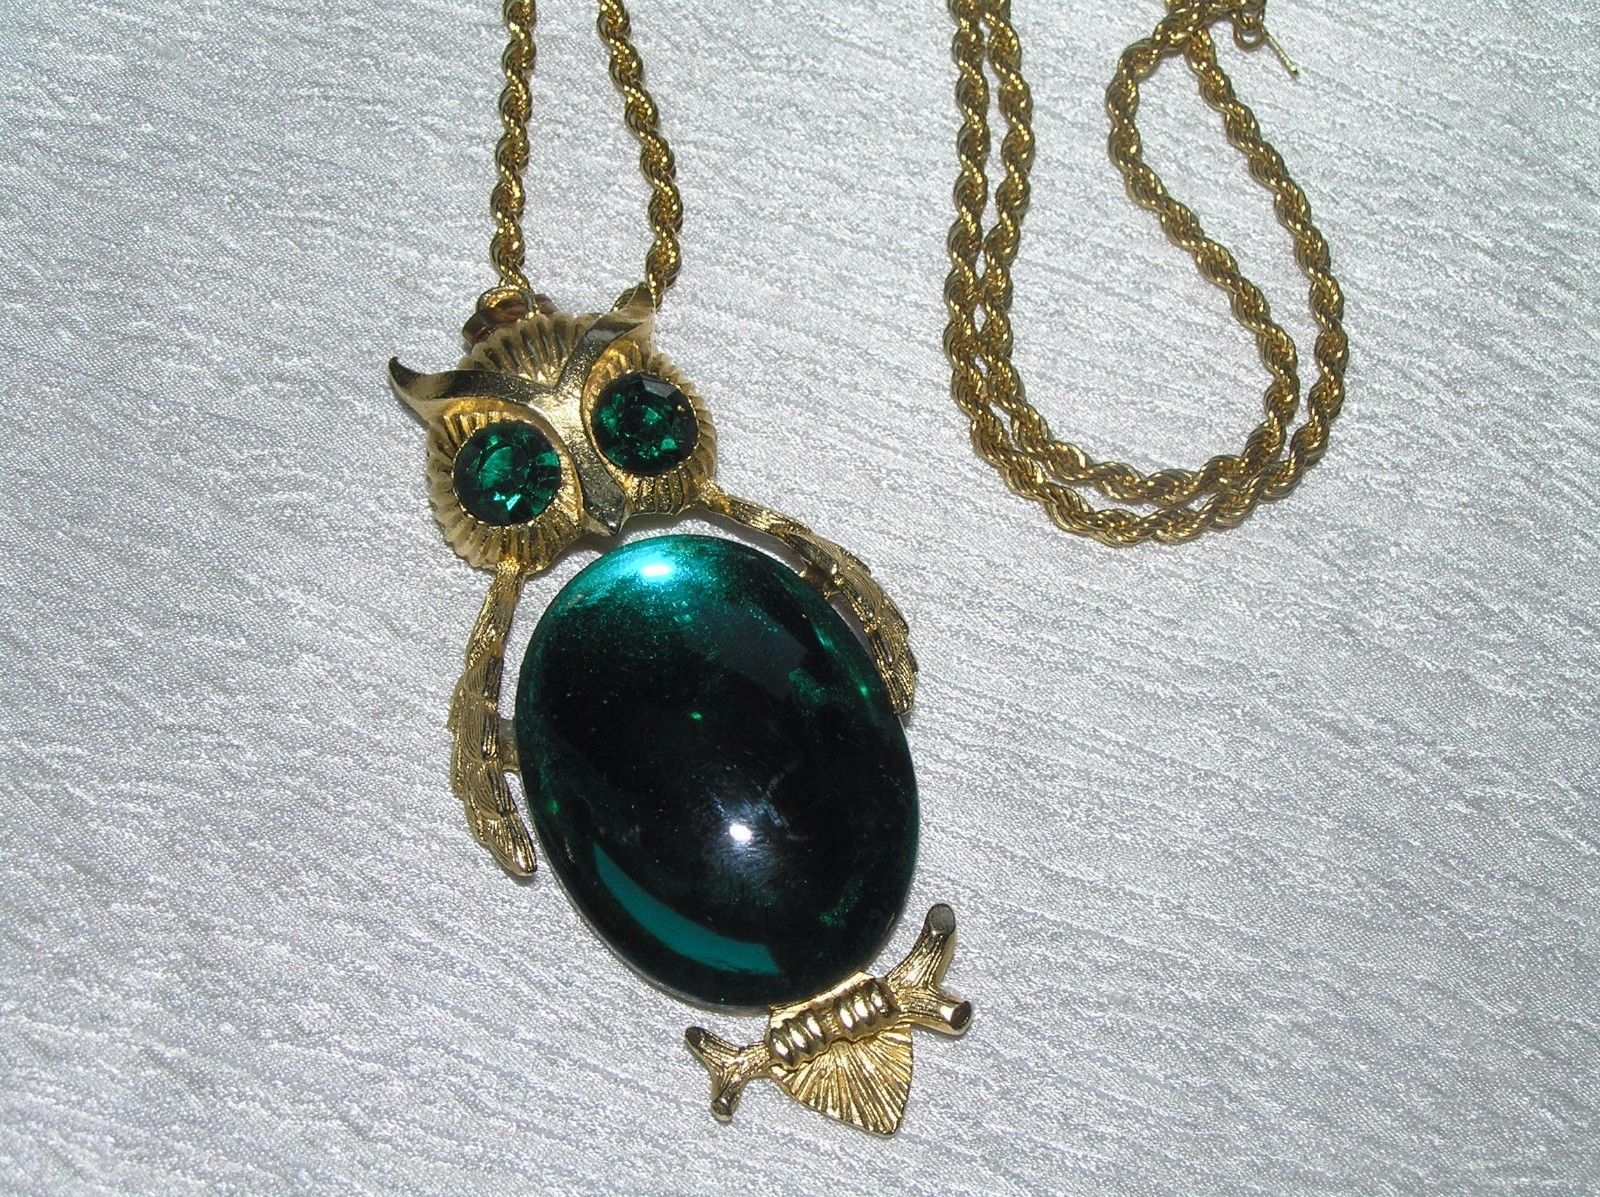 Vintage Monet Signed Twist Goldtone Chain w Large DODDS Green Jelly Belly OWL